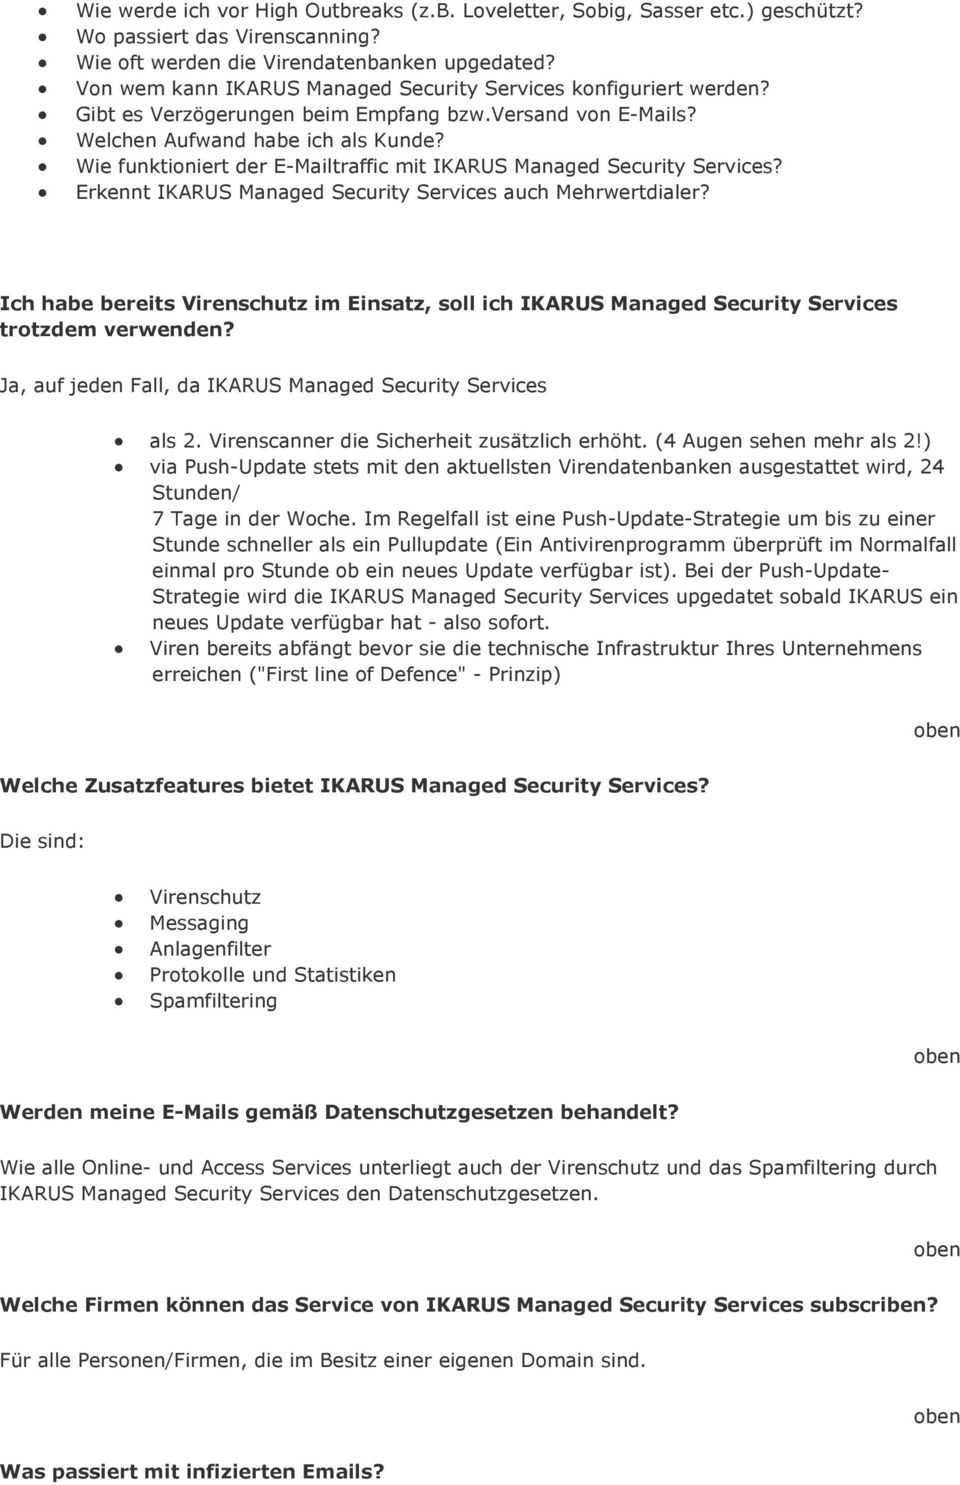 Wie funktioniert der E-Mailtraffic mit IKARUS Managed Security Services? Erkennt IKARUS Managed Security Services auch Mehrwertdialer?